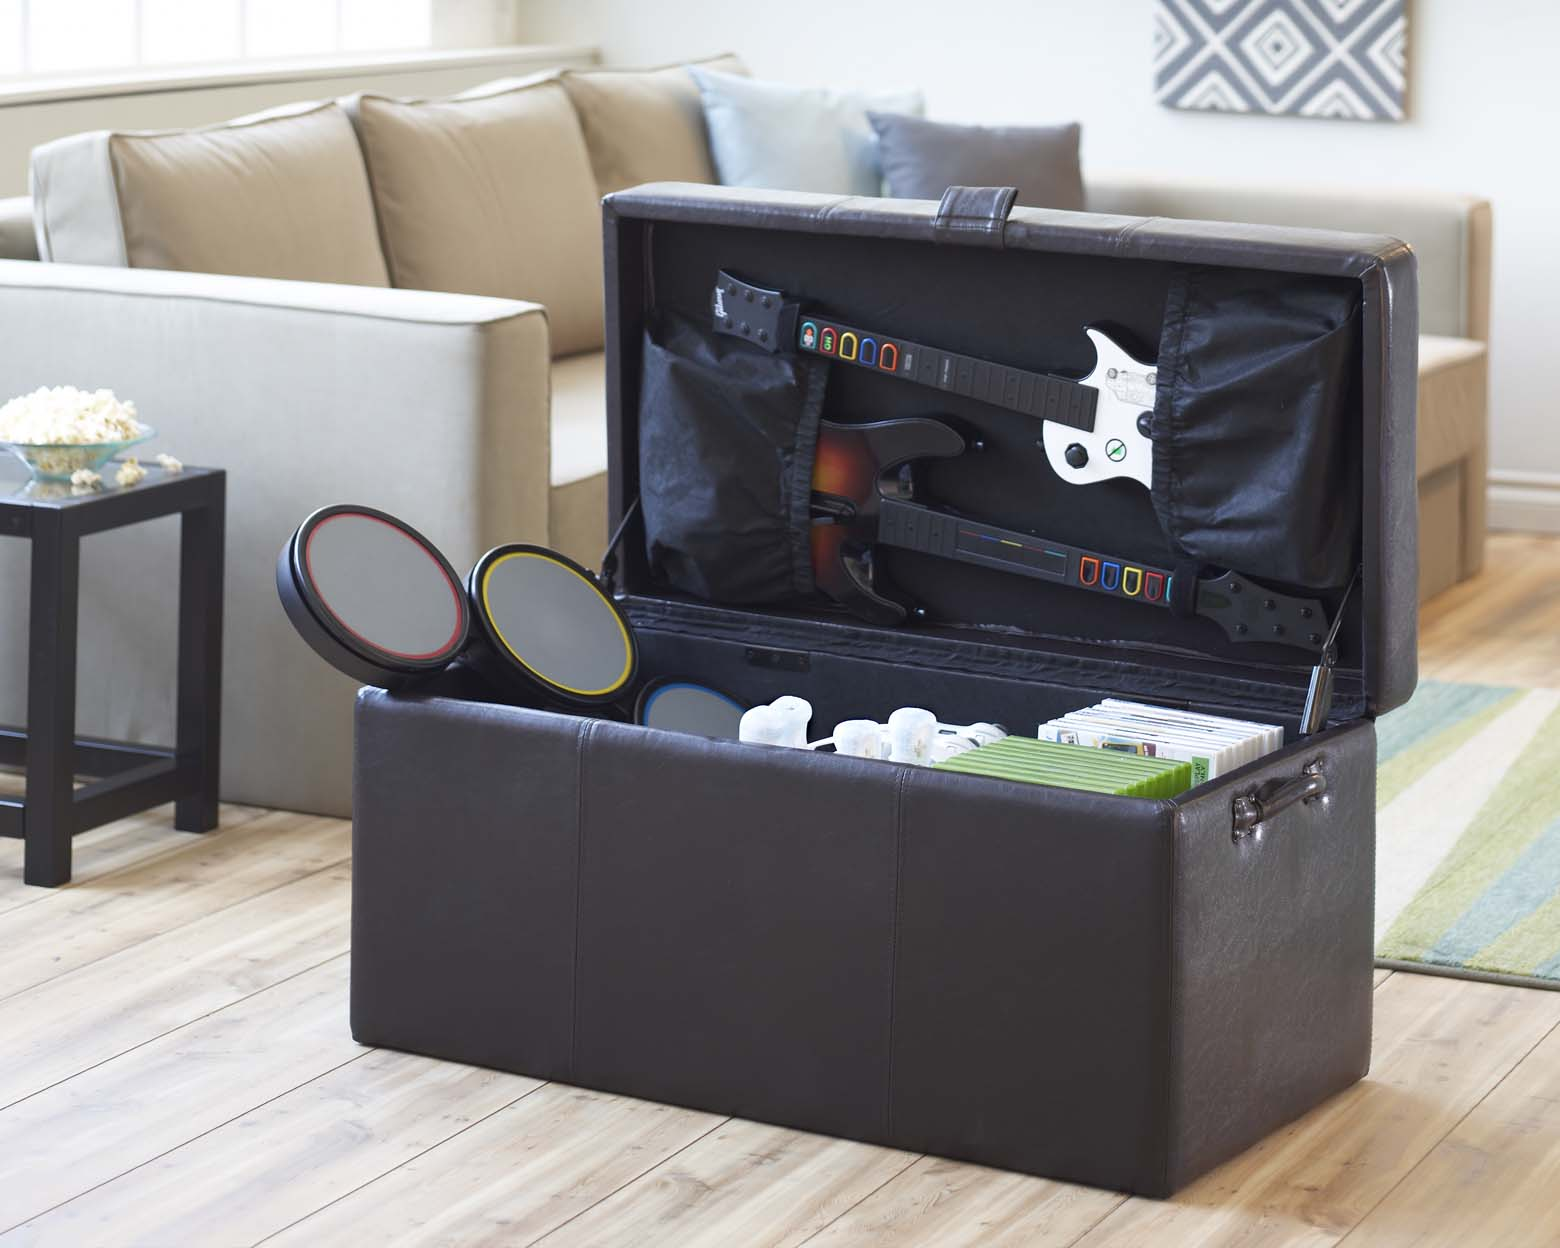 LevelUp Universal Double Gaming Ottoman is an all-in-one storage - Video Game Storage Ottoman House PR